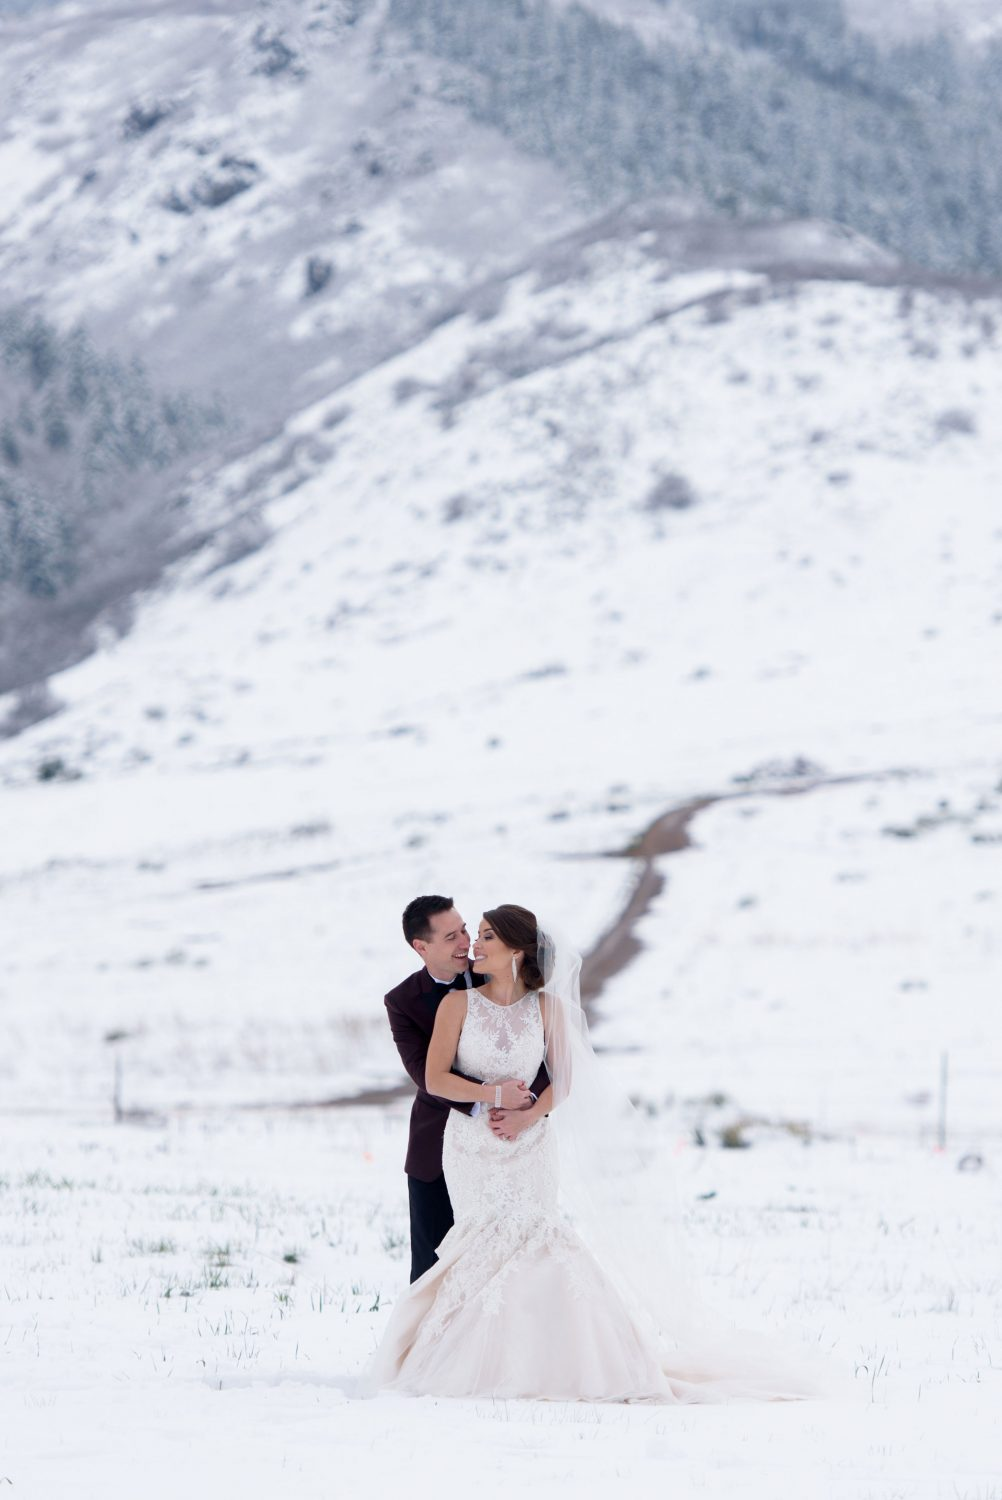 A Snowy Spring Wedding in Colorado